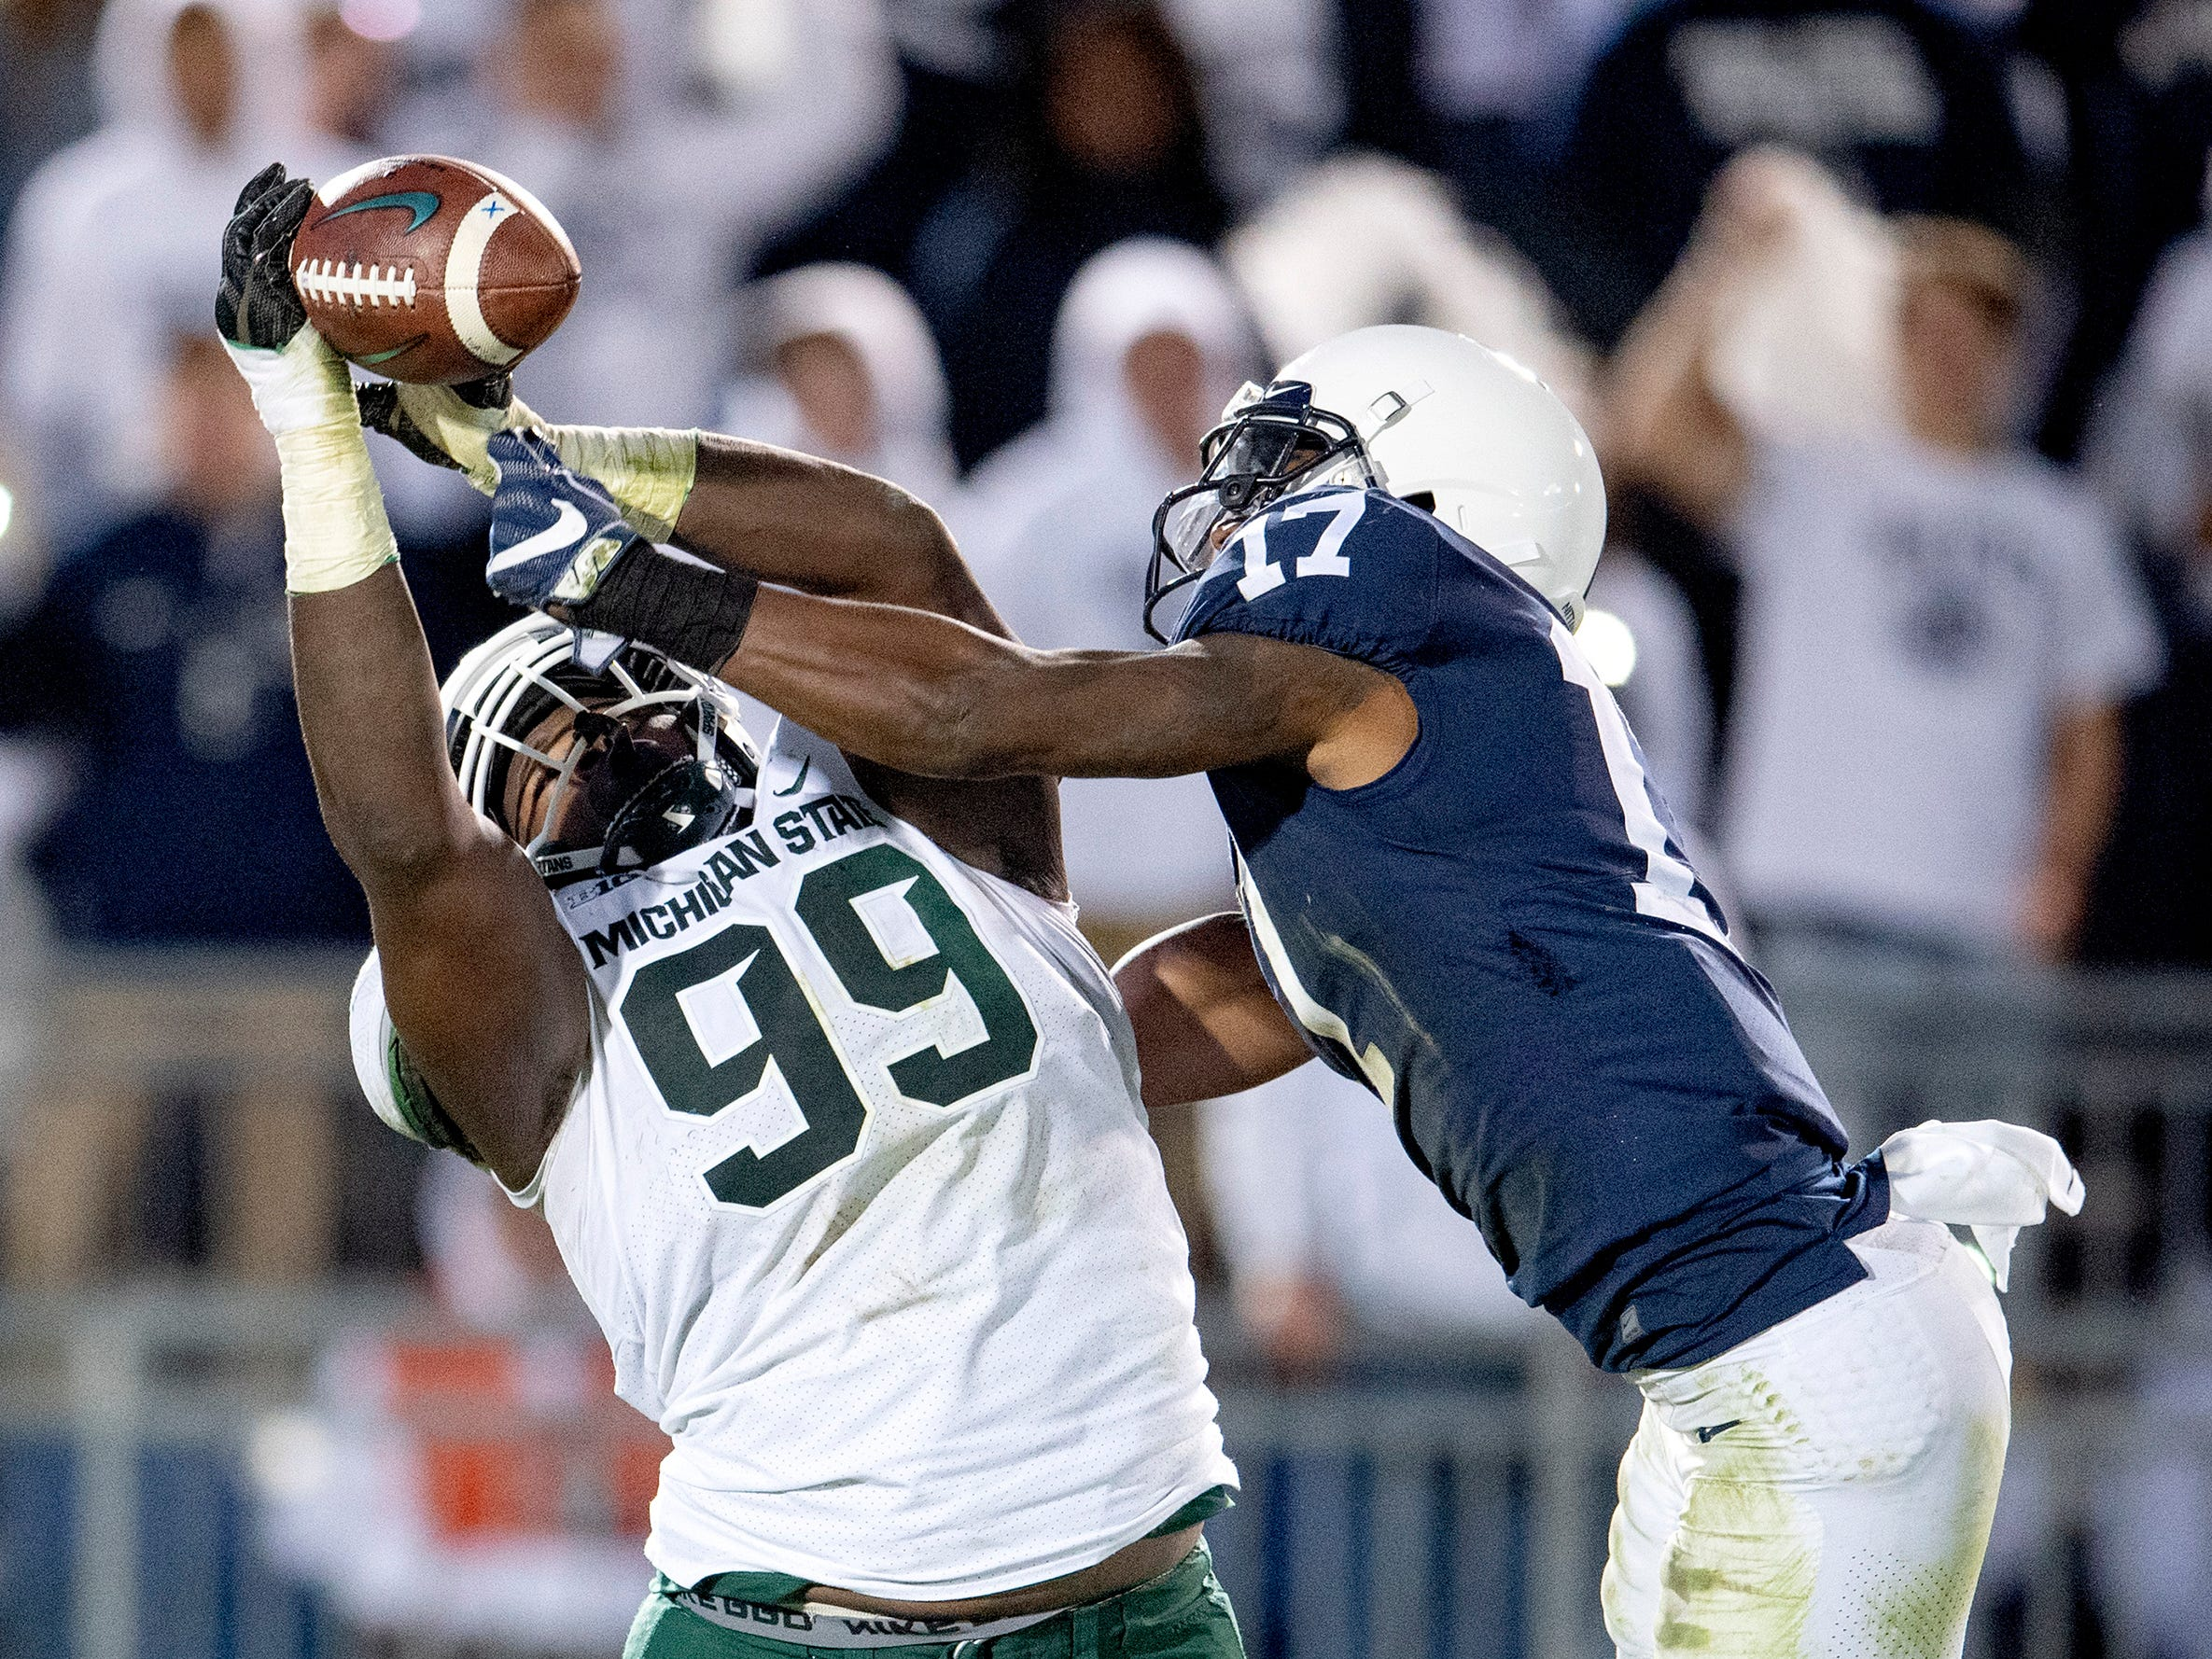 Penn State safety Garrett Taylor, right, knocks the ball away from Michigan State defensive tackle Raequan Williams at Beaver Stadium in University Park, Pa., on Saturday, Oct. 13, 2018. The visiting Spartans won, 21-17. (Abby Drey/Centre Daily Times/TNS)